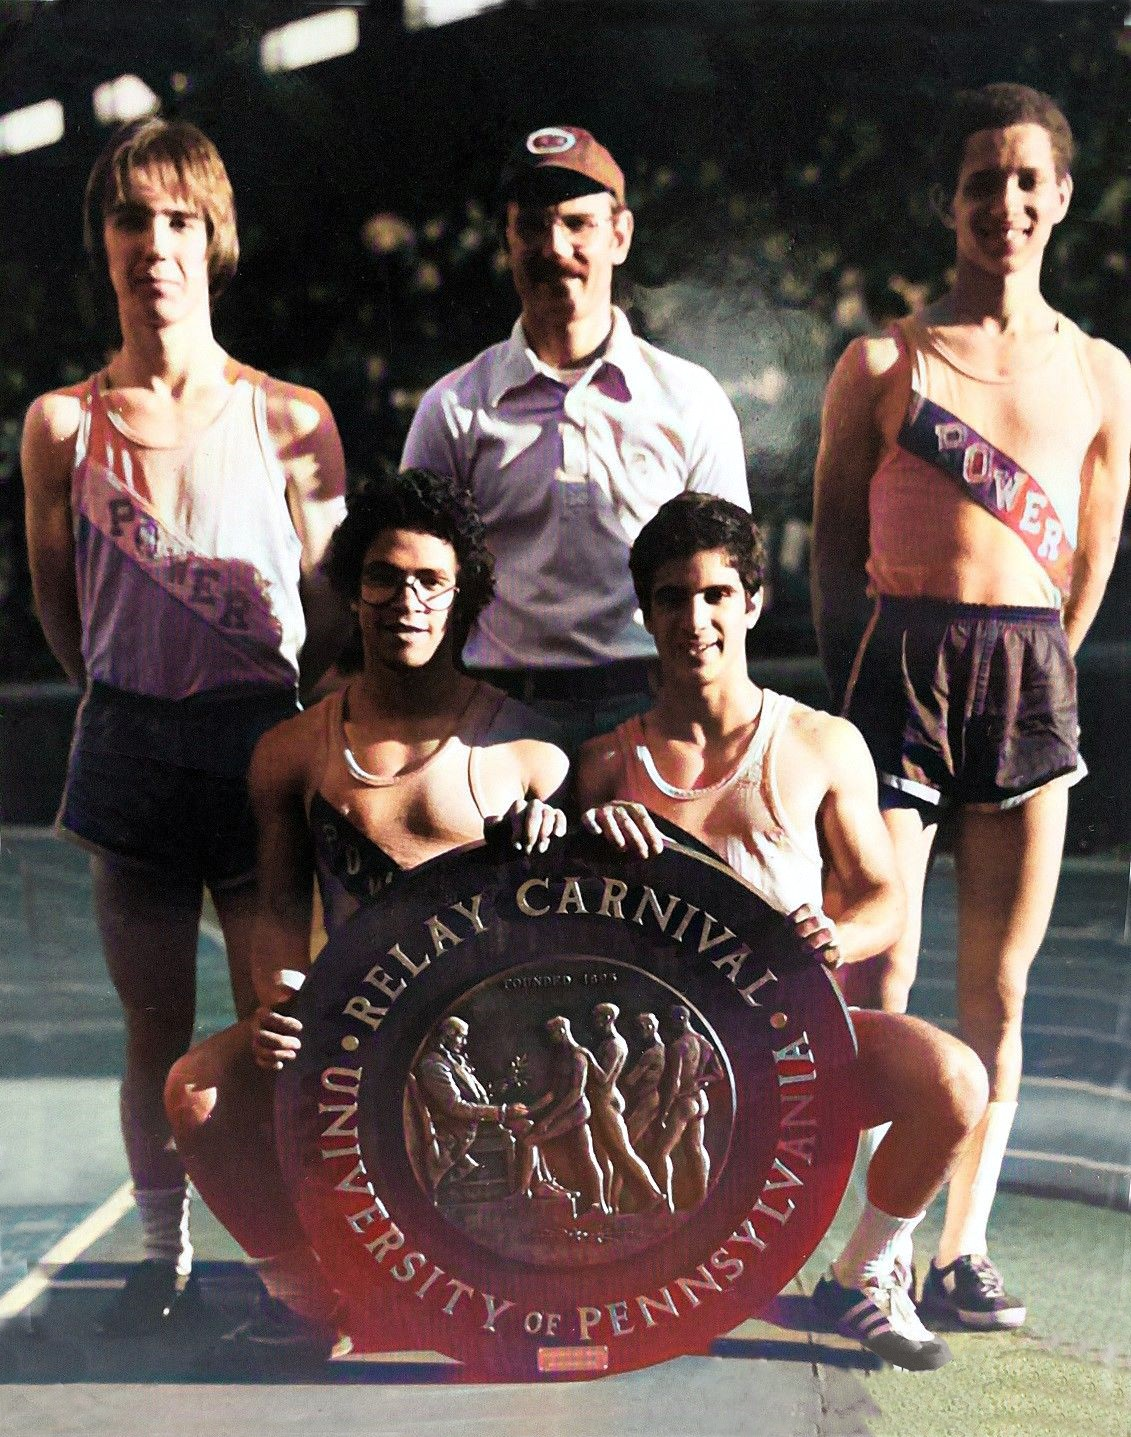 1976 Penn Relays Distance Medley Champions of America